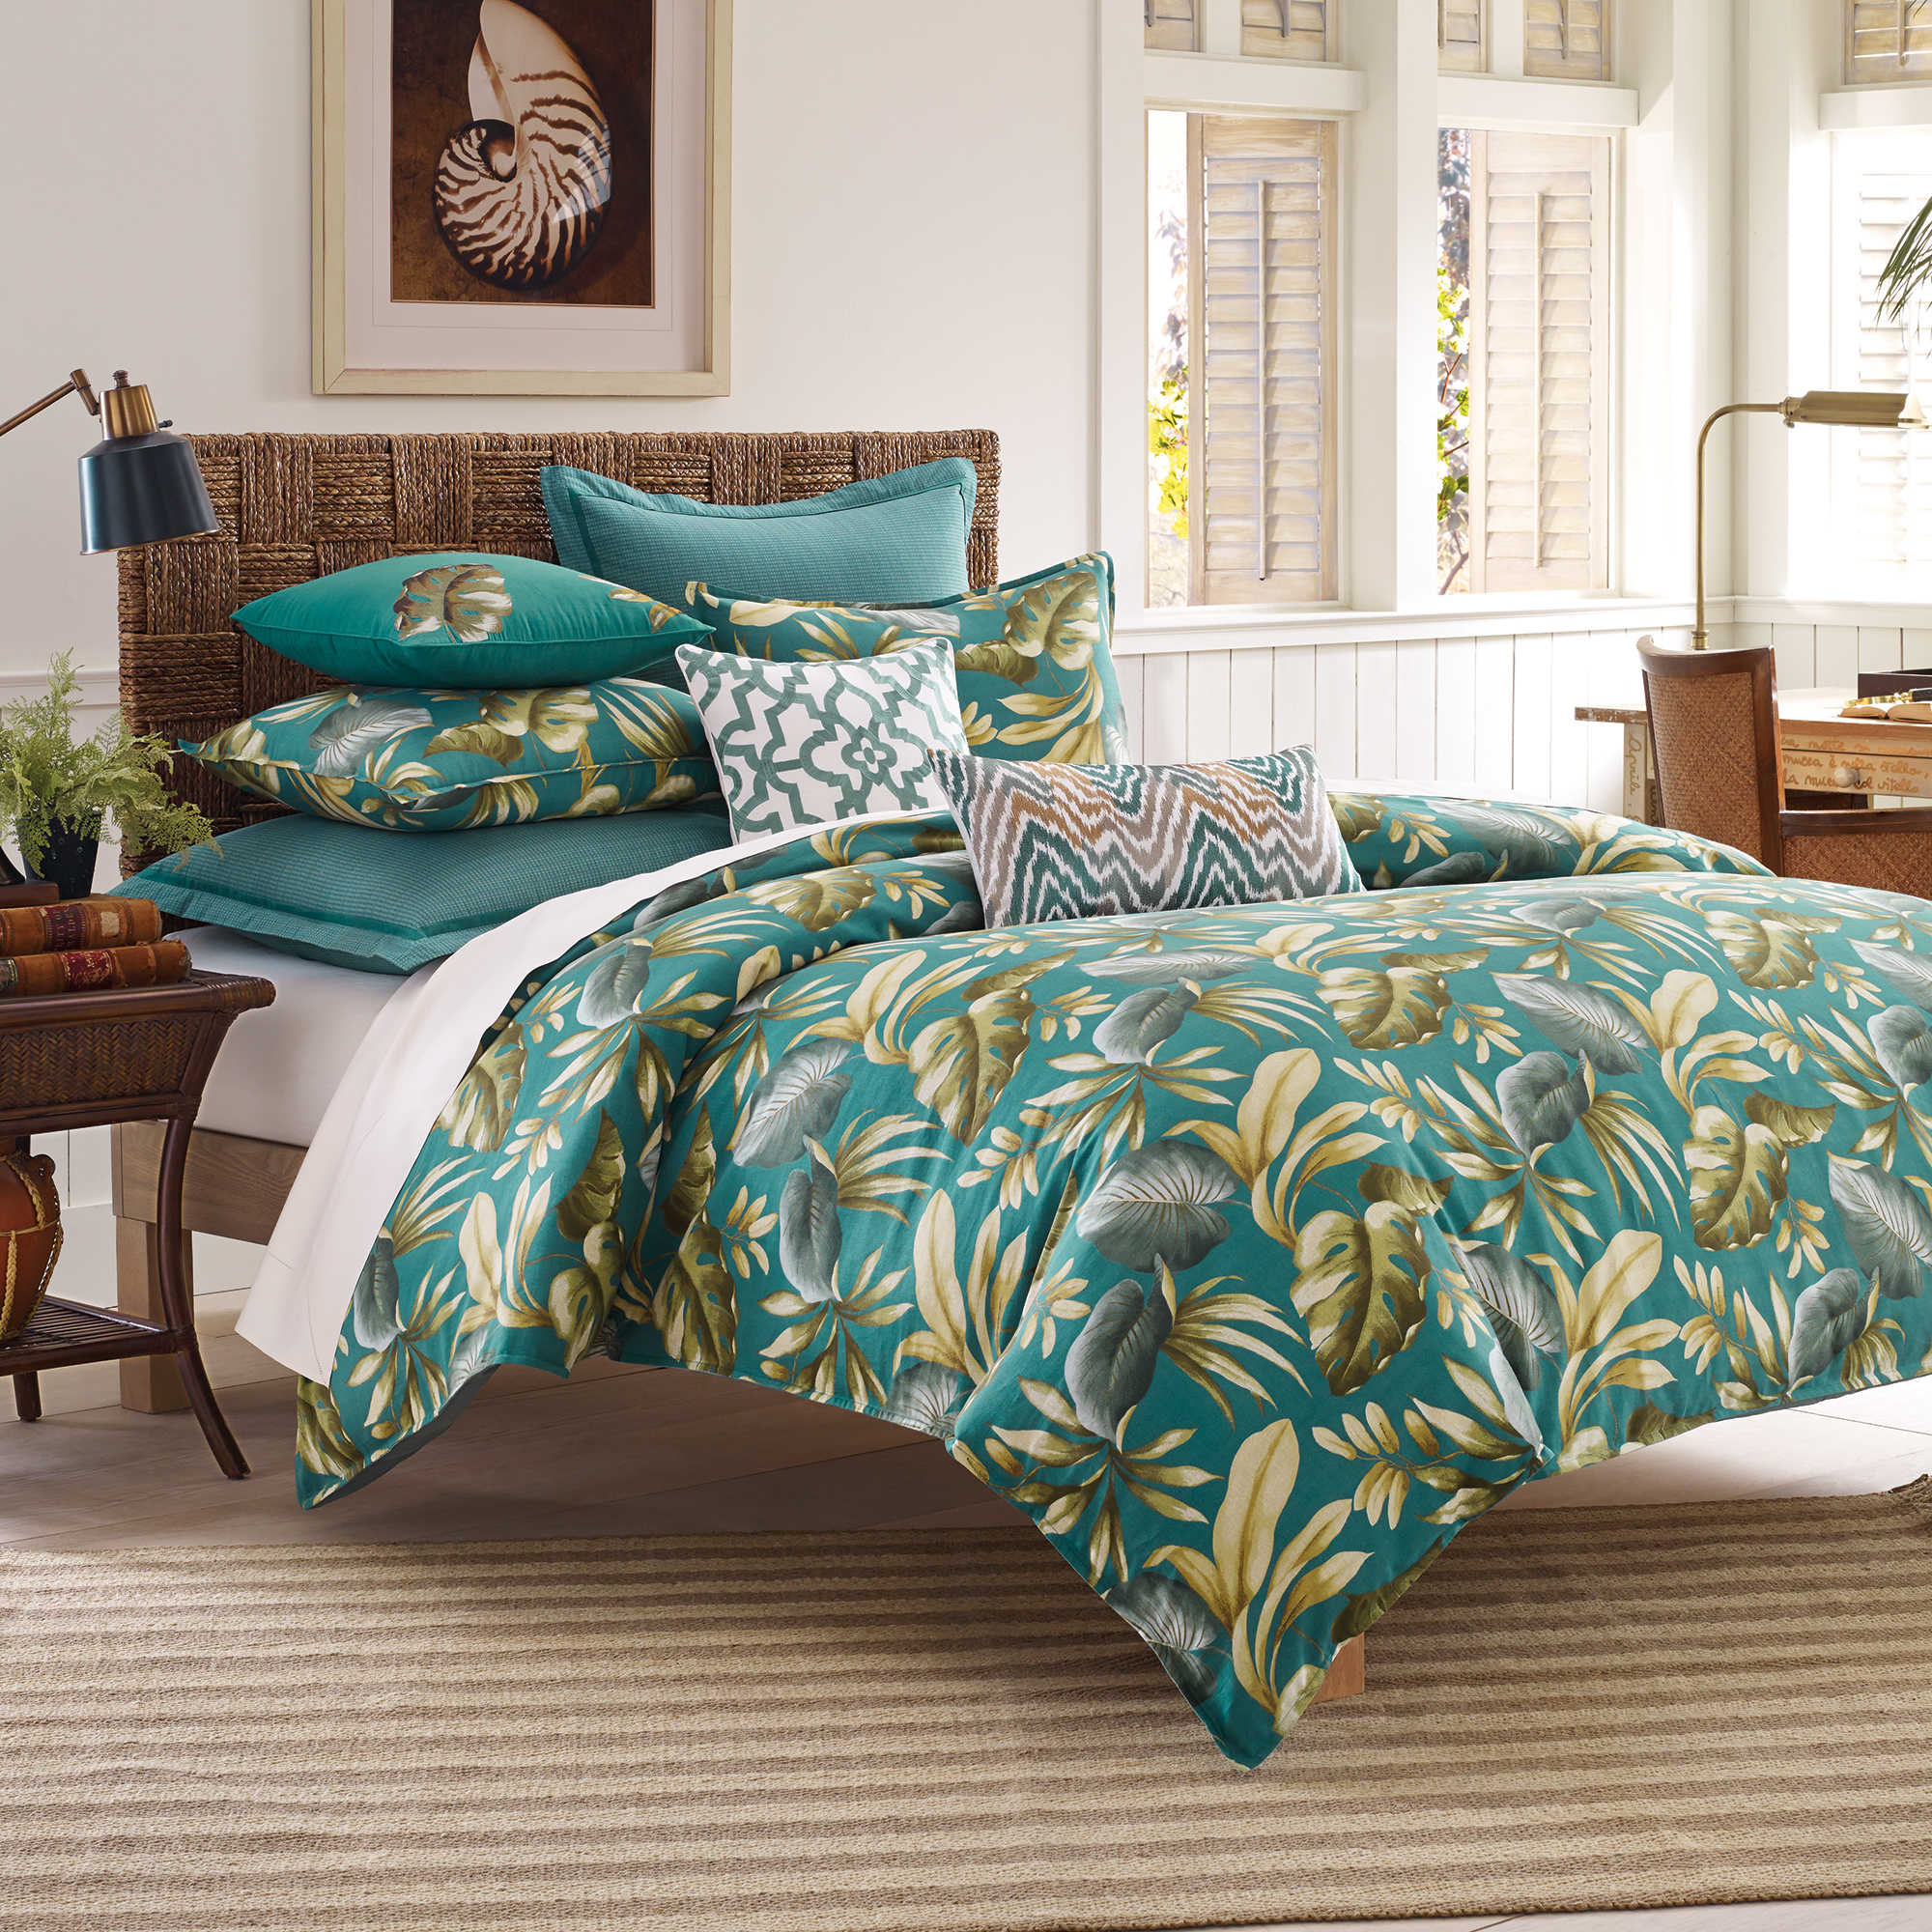 Pottery Barn Tropical Bedding Island Surf Quilted Bedding